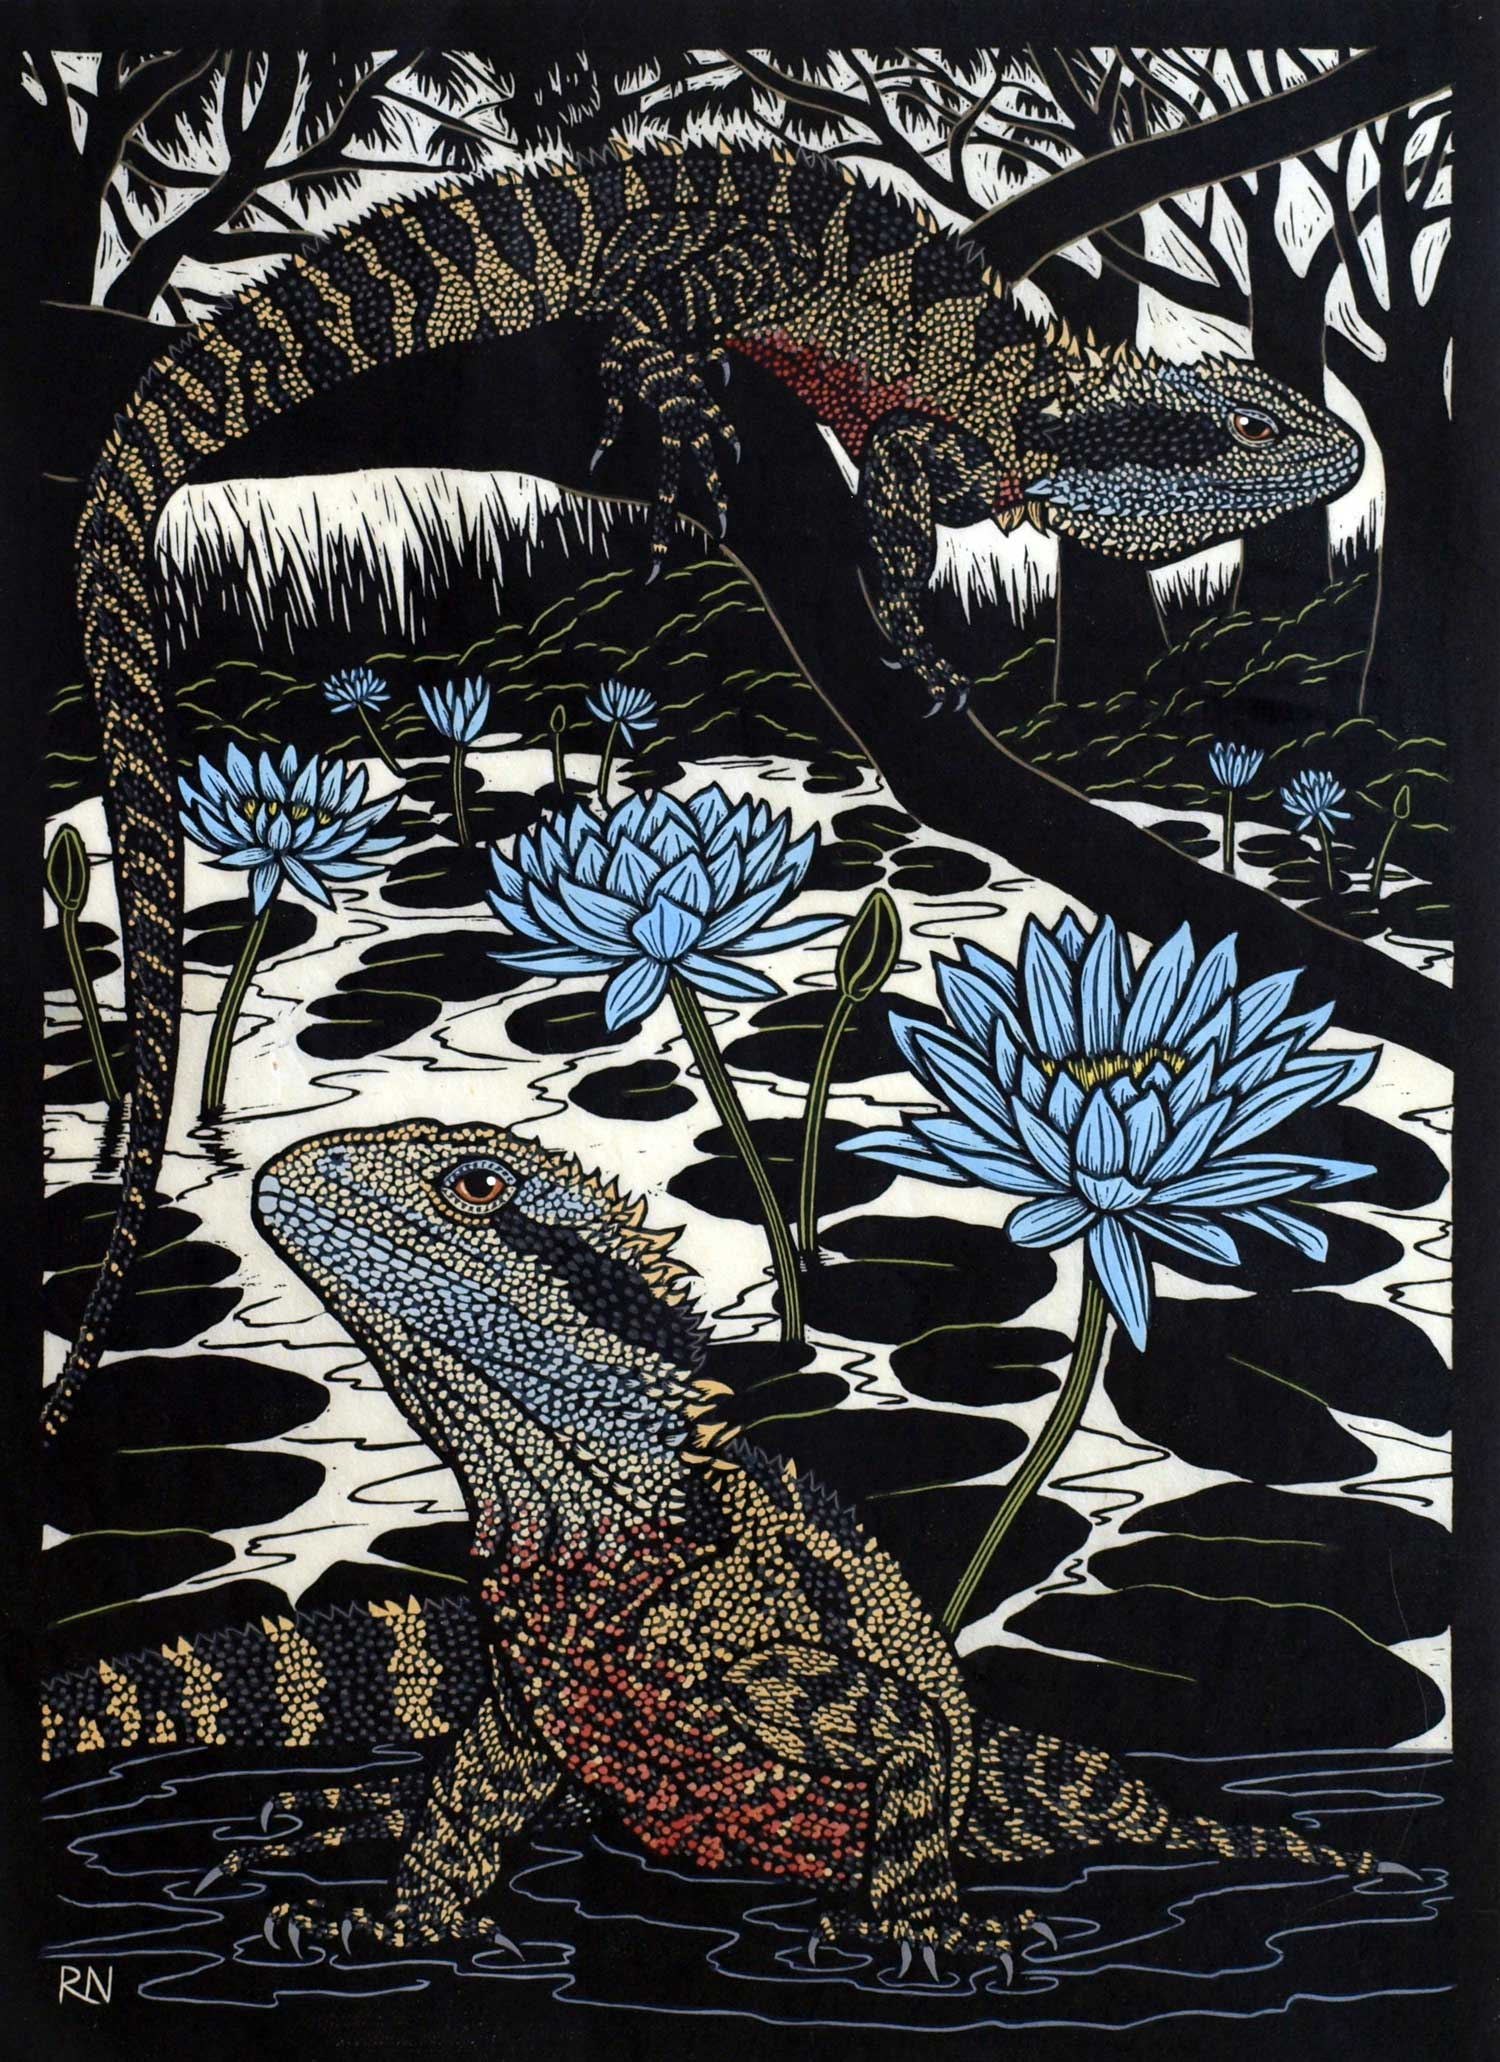 WATER DRAGON  49 X 35.5 CM, EDITION OF 50  HAND-COLOURED LINOCUT ON HANDMADE JAPANESE PAPER  $1,100